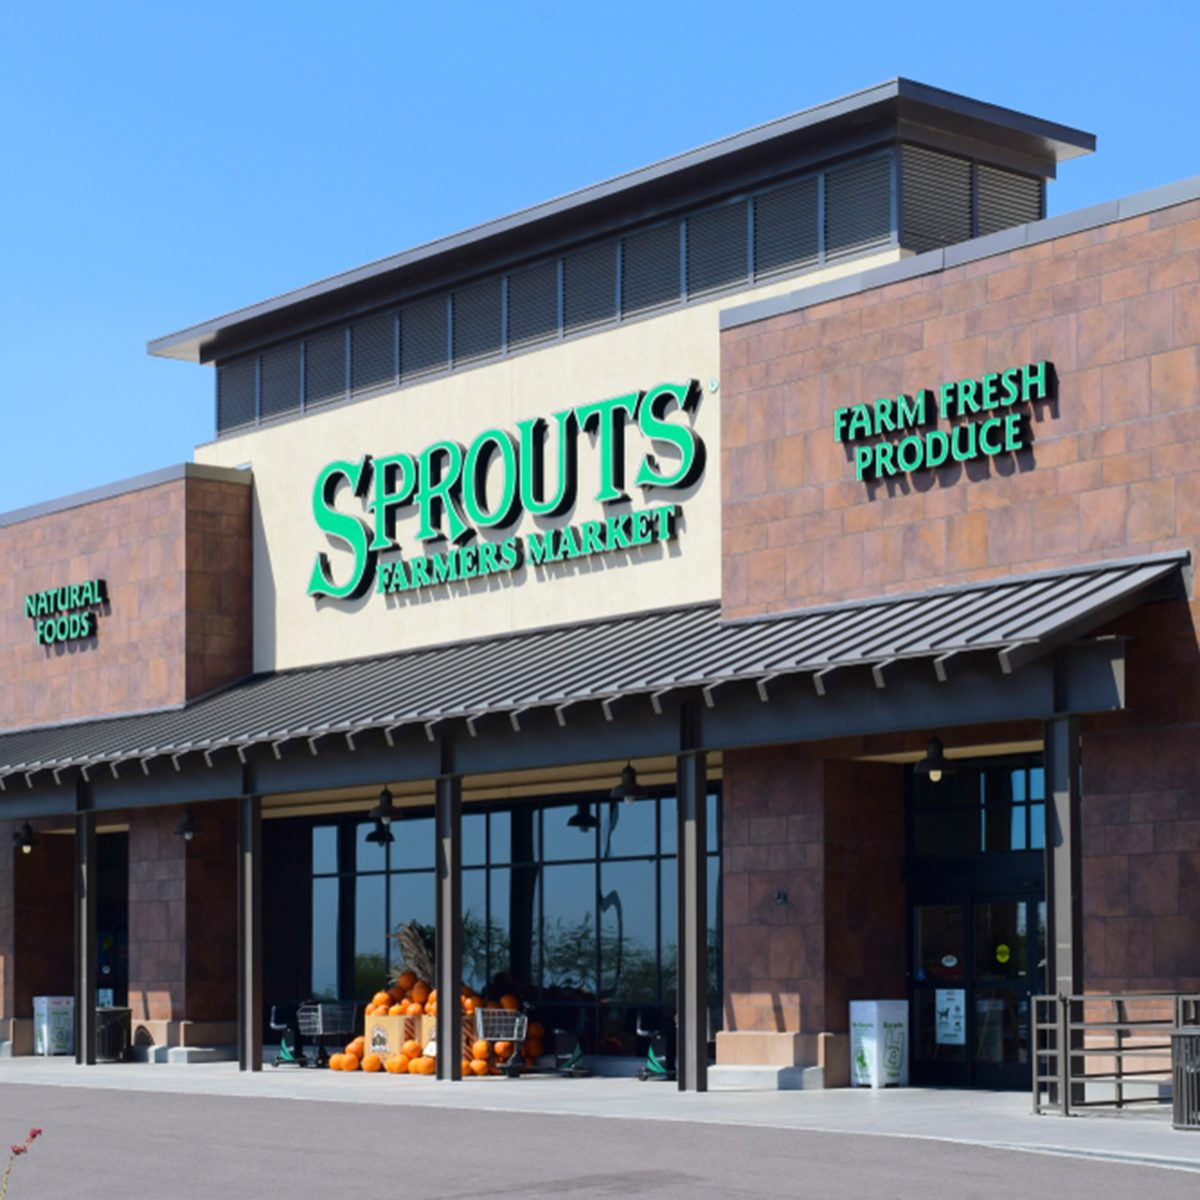 This is the newest Sprouts to open in northeast Mesa, AZ